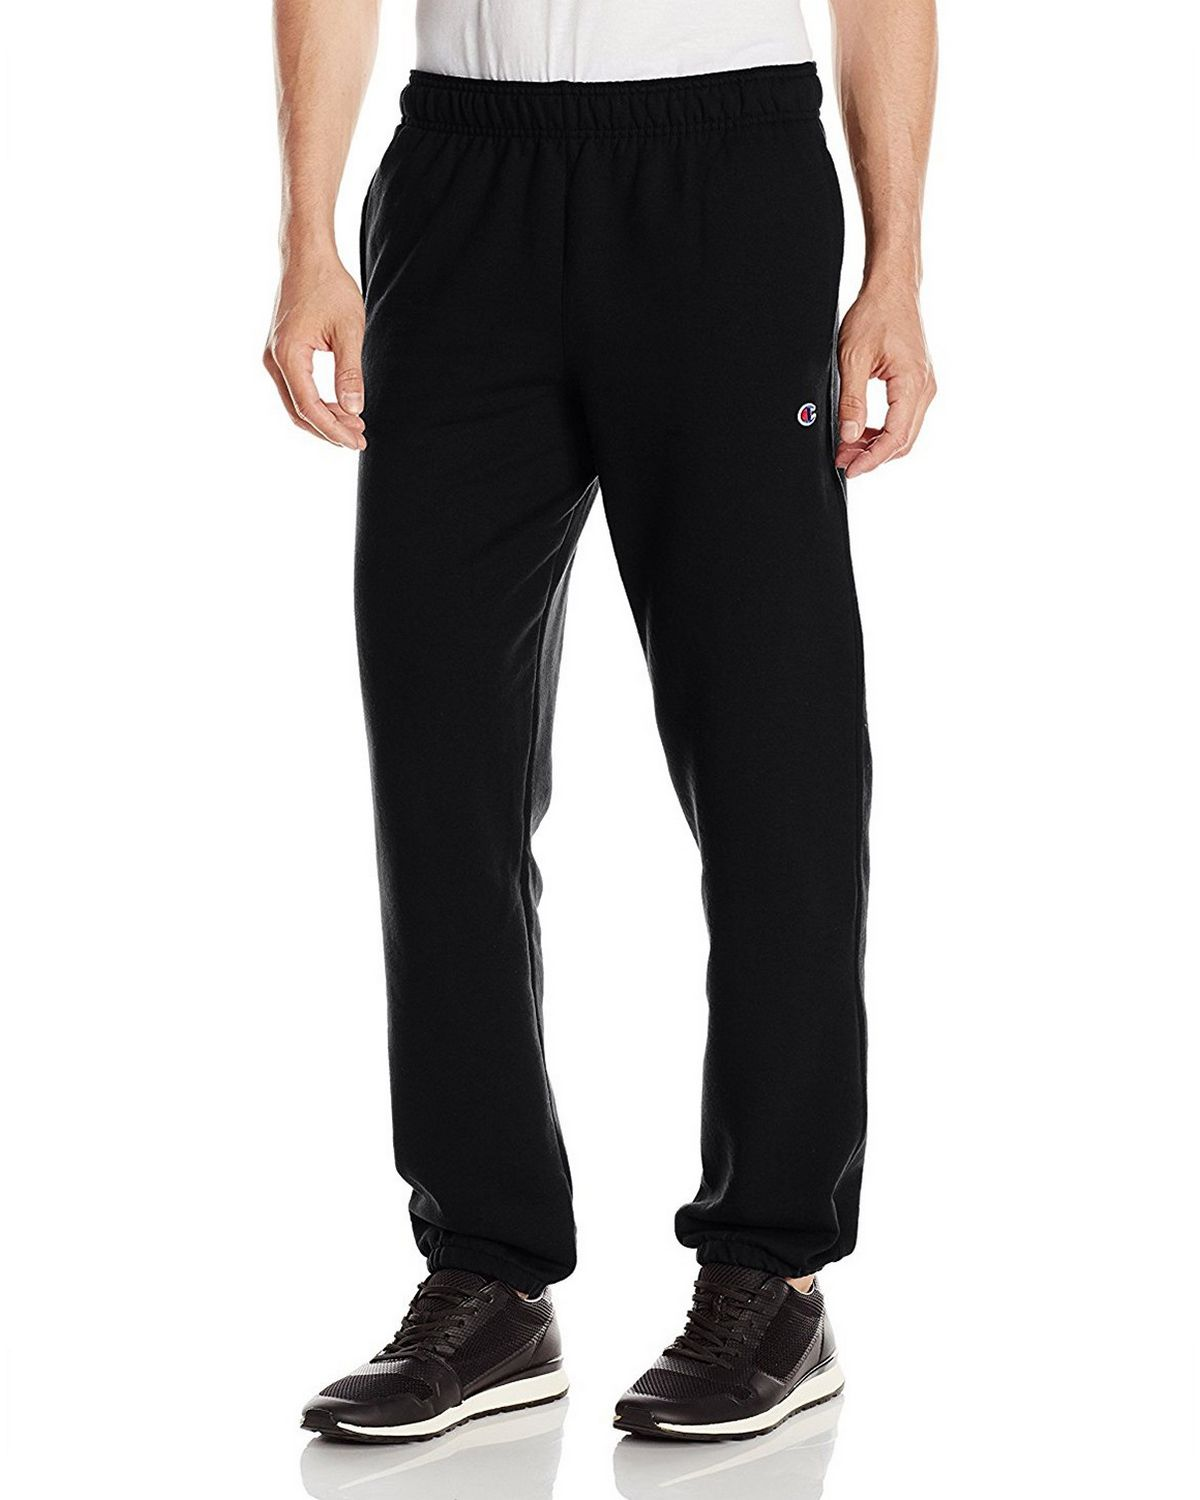 Champion P0894 Mens Powerblend Fleece Pants - Black - XL P0894